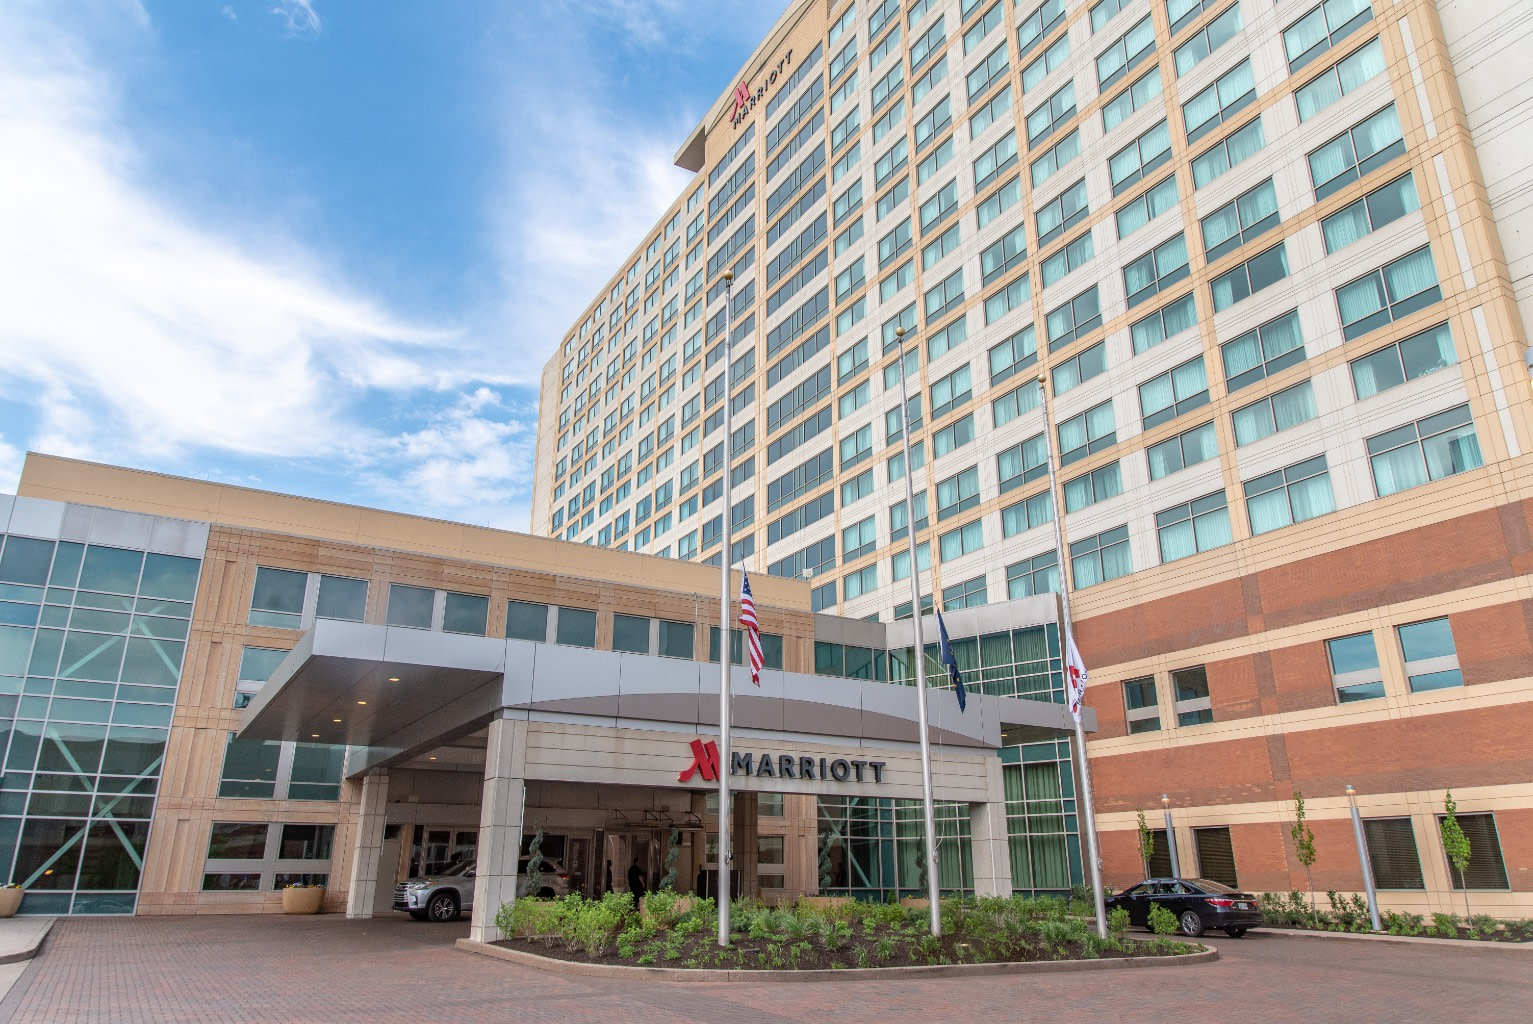 We have negotiated group discounts and secured a book of reduced-rate hotel rooms with the Indianapolis Marriott Downtown to make your trip to Indianapolis more affordable. Attendees can secure rooms at the group rate of $159 USD per single/double, plus tax when reserved by August 16, 2019. To book your hotel room, call 877/640-7666 or reserve online here. Spaces are limited and on a first-come, first-served basis.